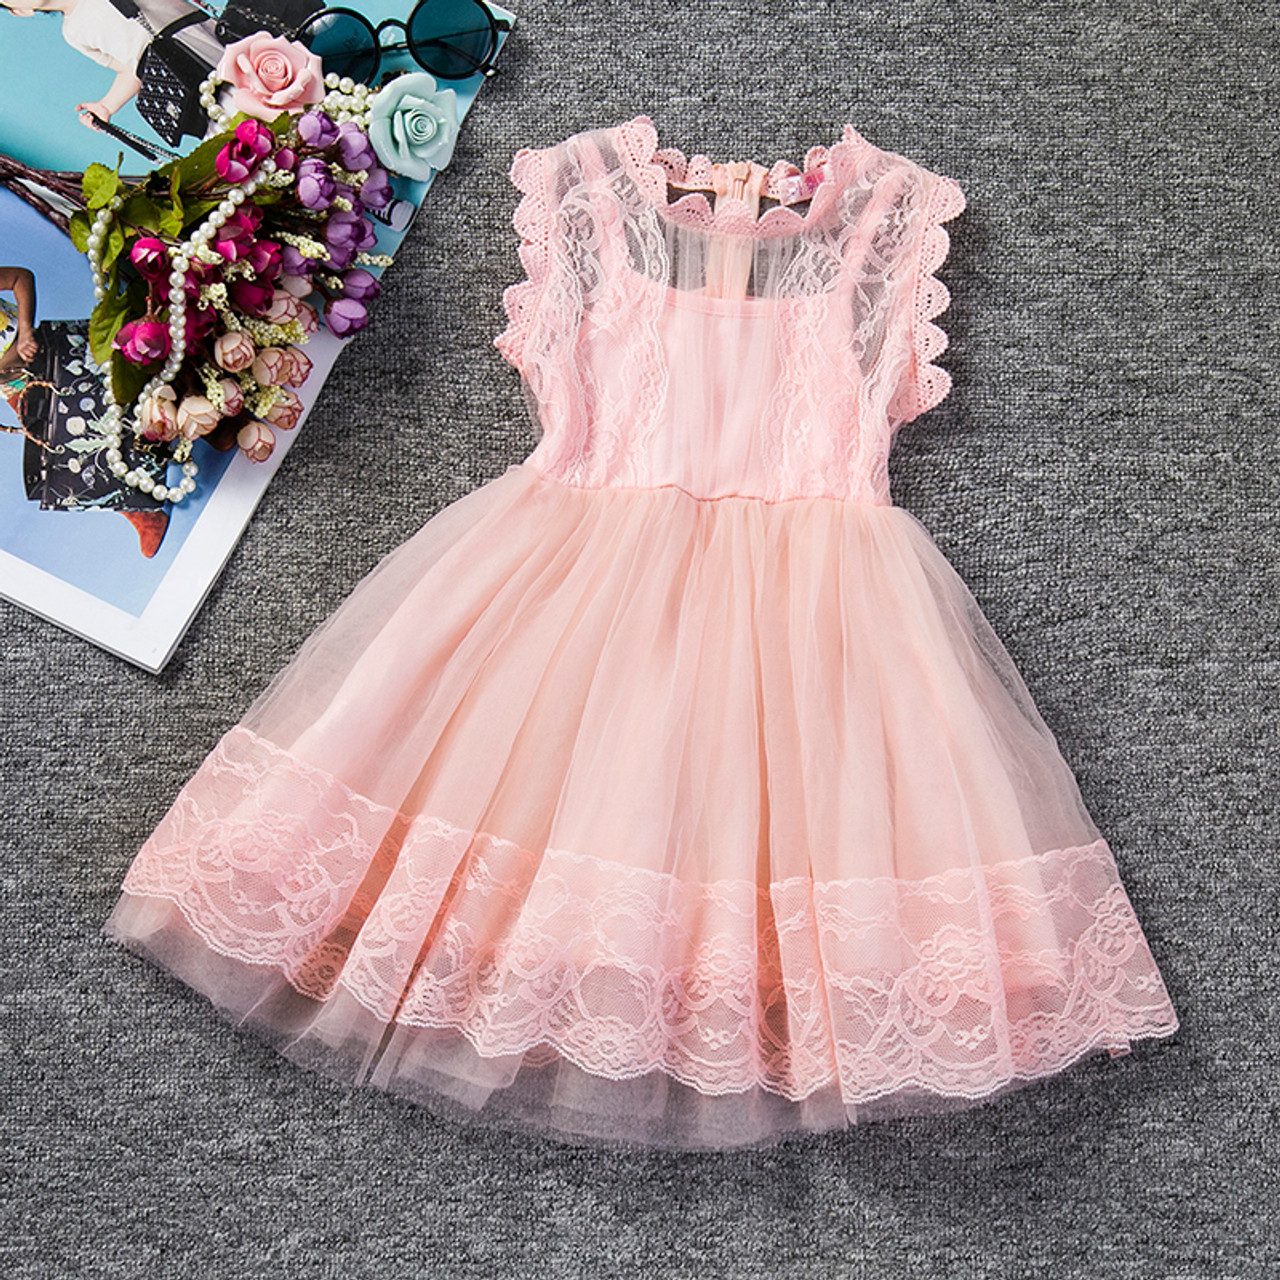 a3dc93cfbe8b4 2018 Baby Girl Floral Lace Princess Tutu Dress Wedding Christening Gown  Dress Girls Clothes For Kids Party Wear Meninas Vestidos